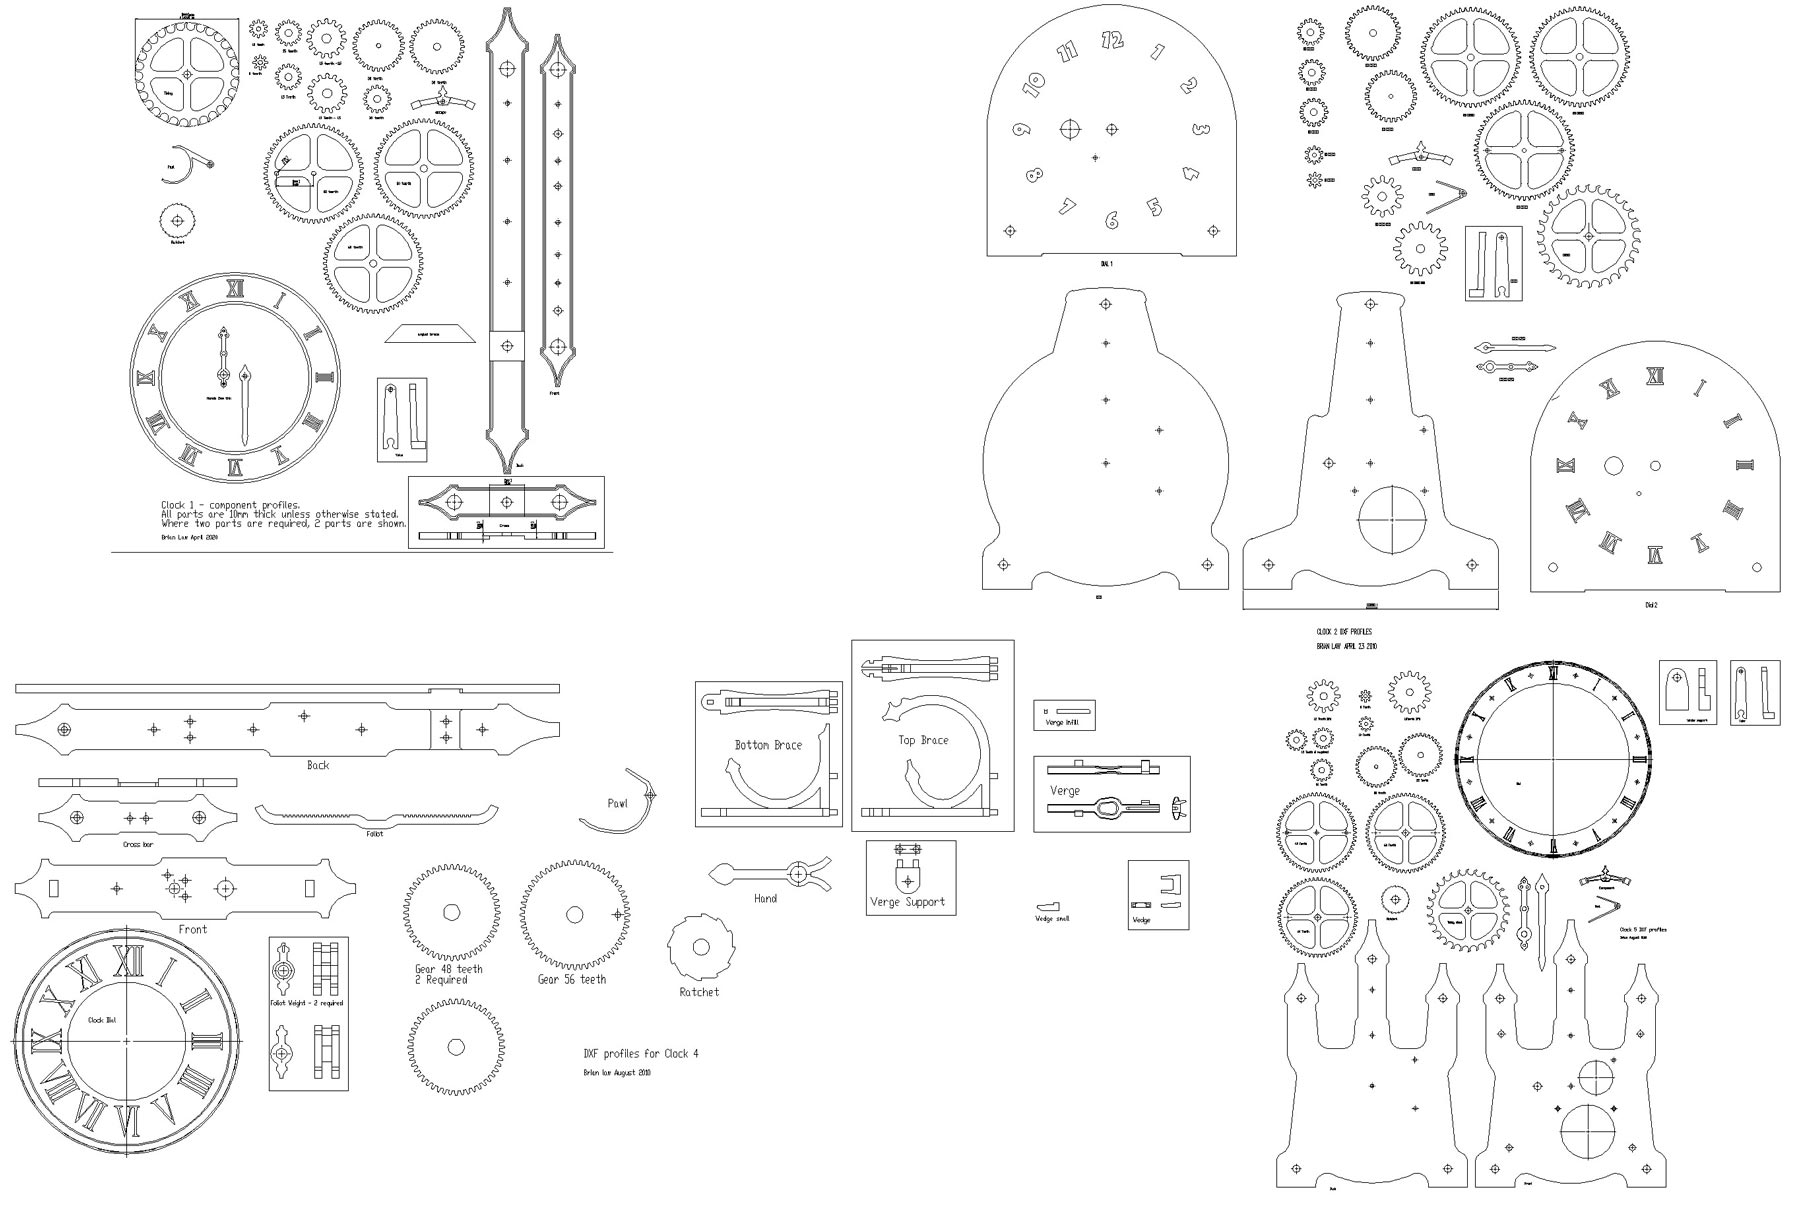 Horse bench plans drawing at getdrawings free for personal use 1800x1205 how to make a wooden gear clock wooden clock plans wooden gear malvernweather Gallery